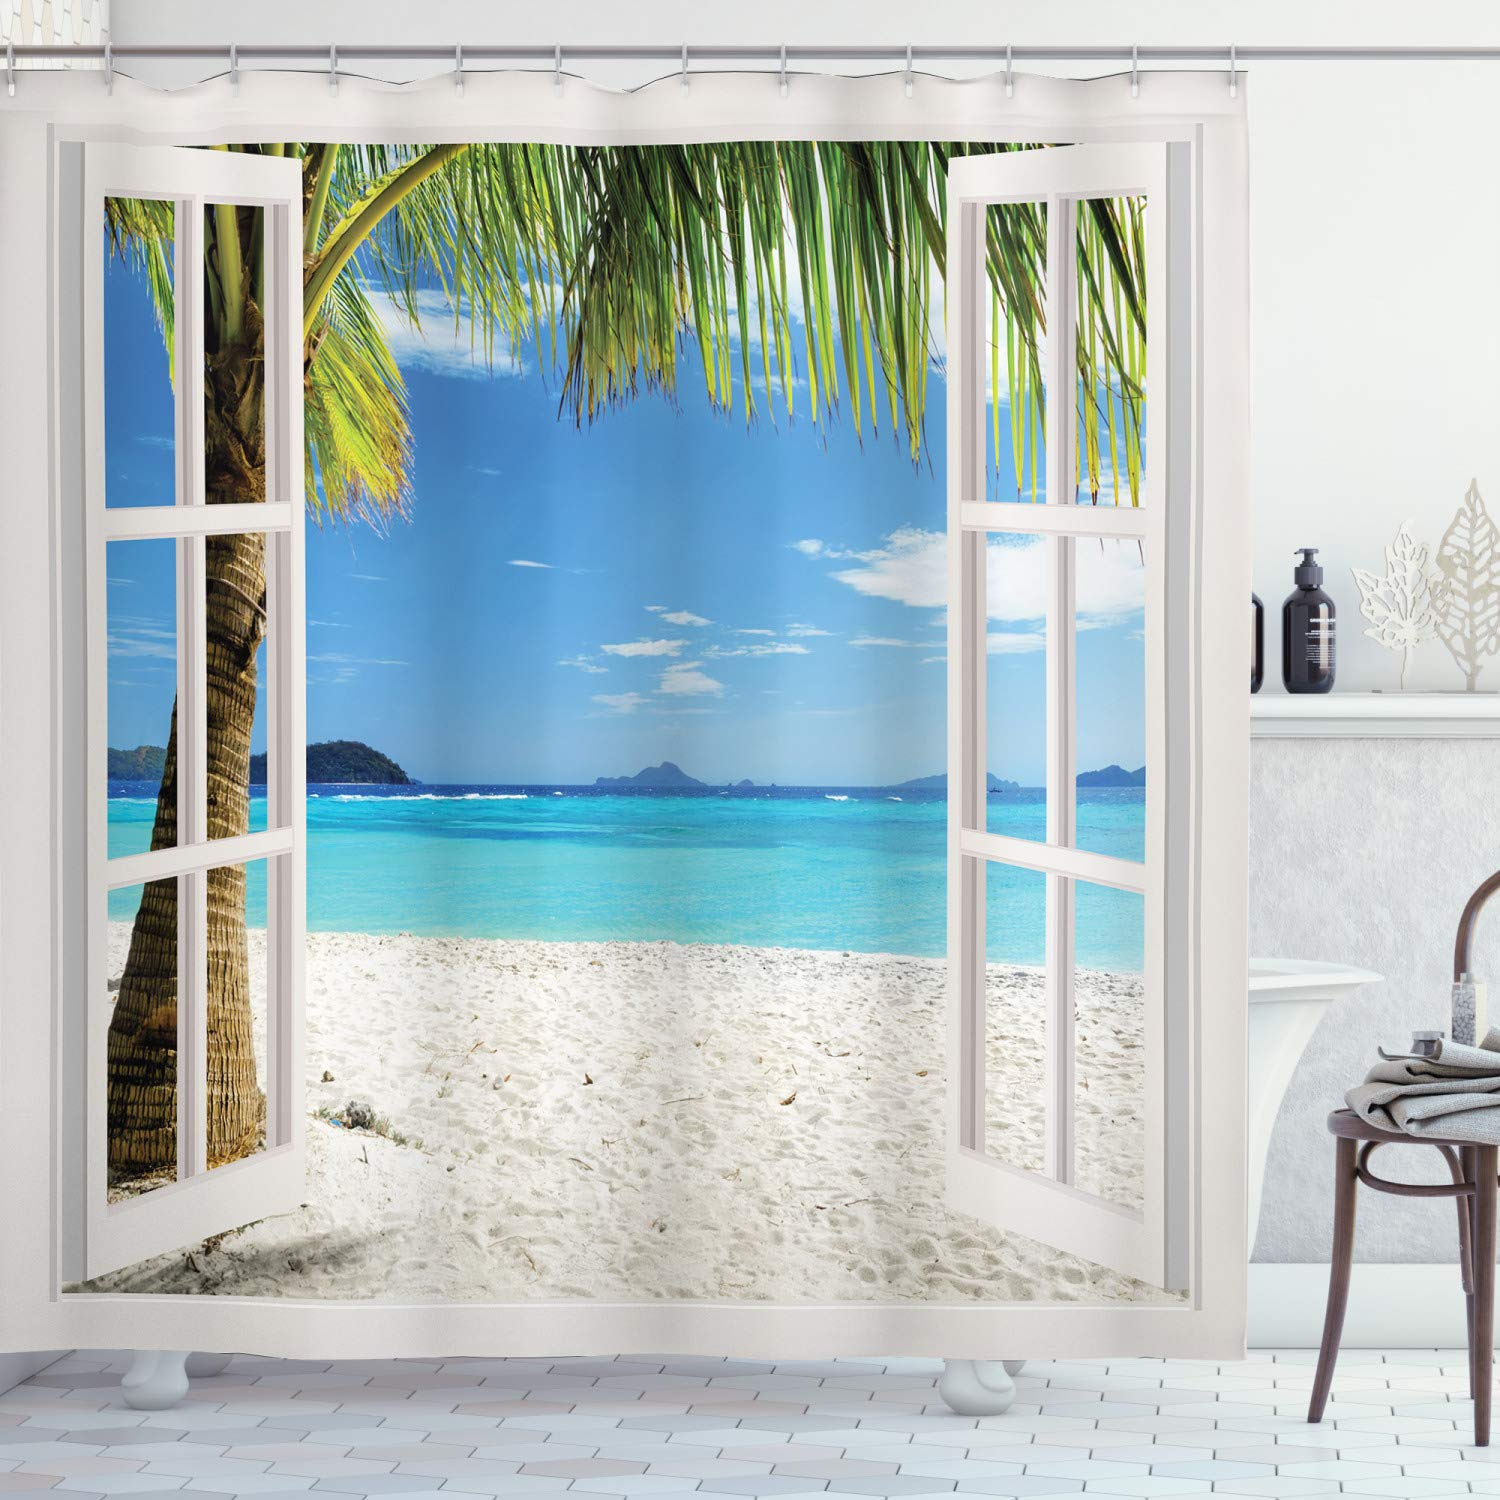 """Ambesonne Turquoise Shower Curtain, Tropical Palm Trees on Island Ocean Beach Through White Wooden Windows, Cloth Fabric Bathroom Decor Set with Hooks, 84"""" Long Extra, White Blue"""